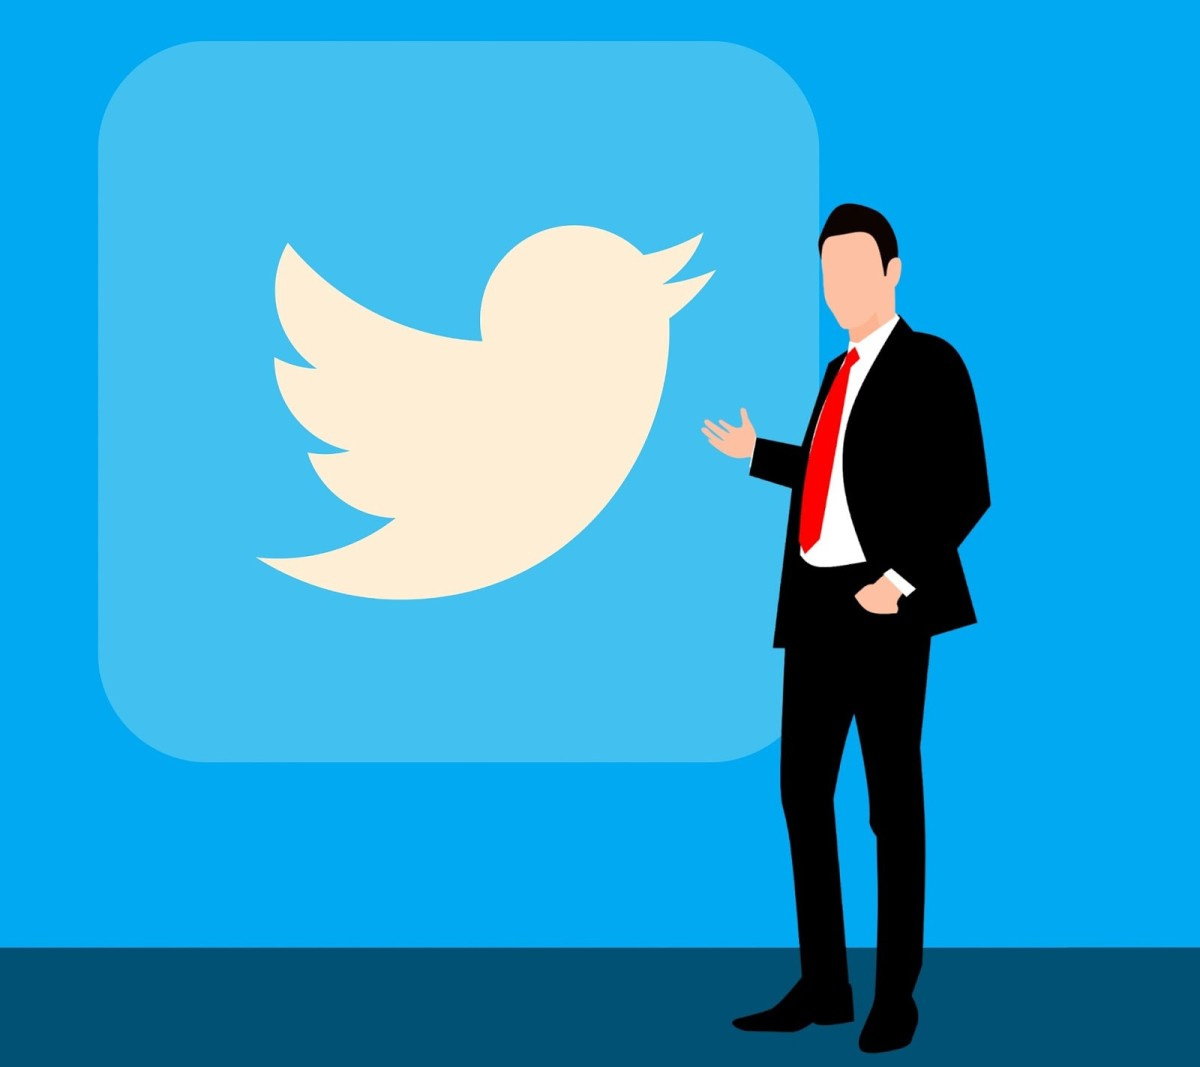 getting-the-most-out-of-a-350-million-users-audience-twitter-targeting-tips